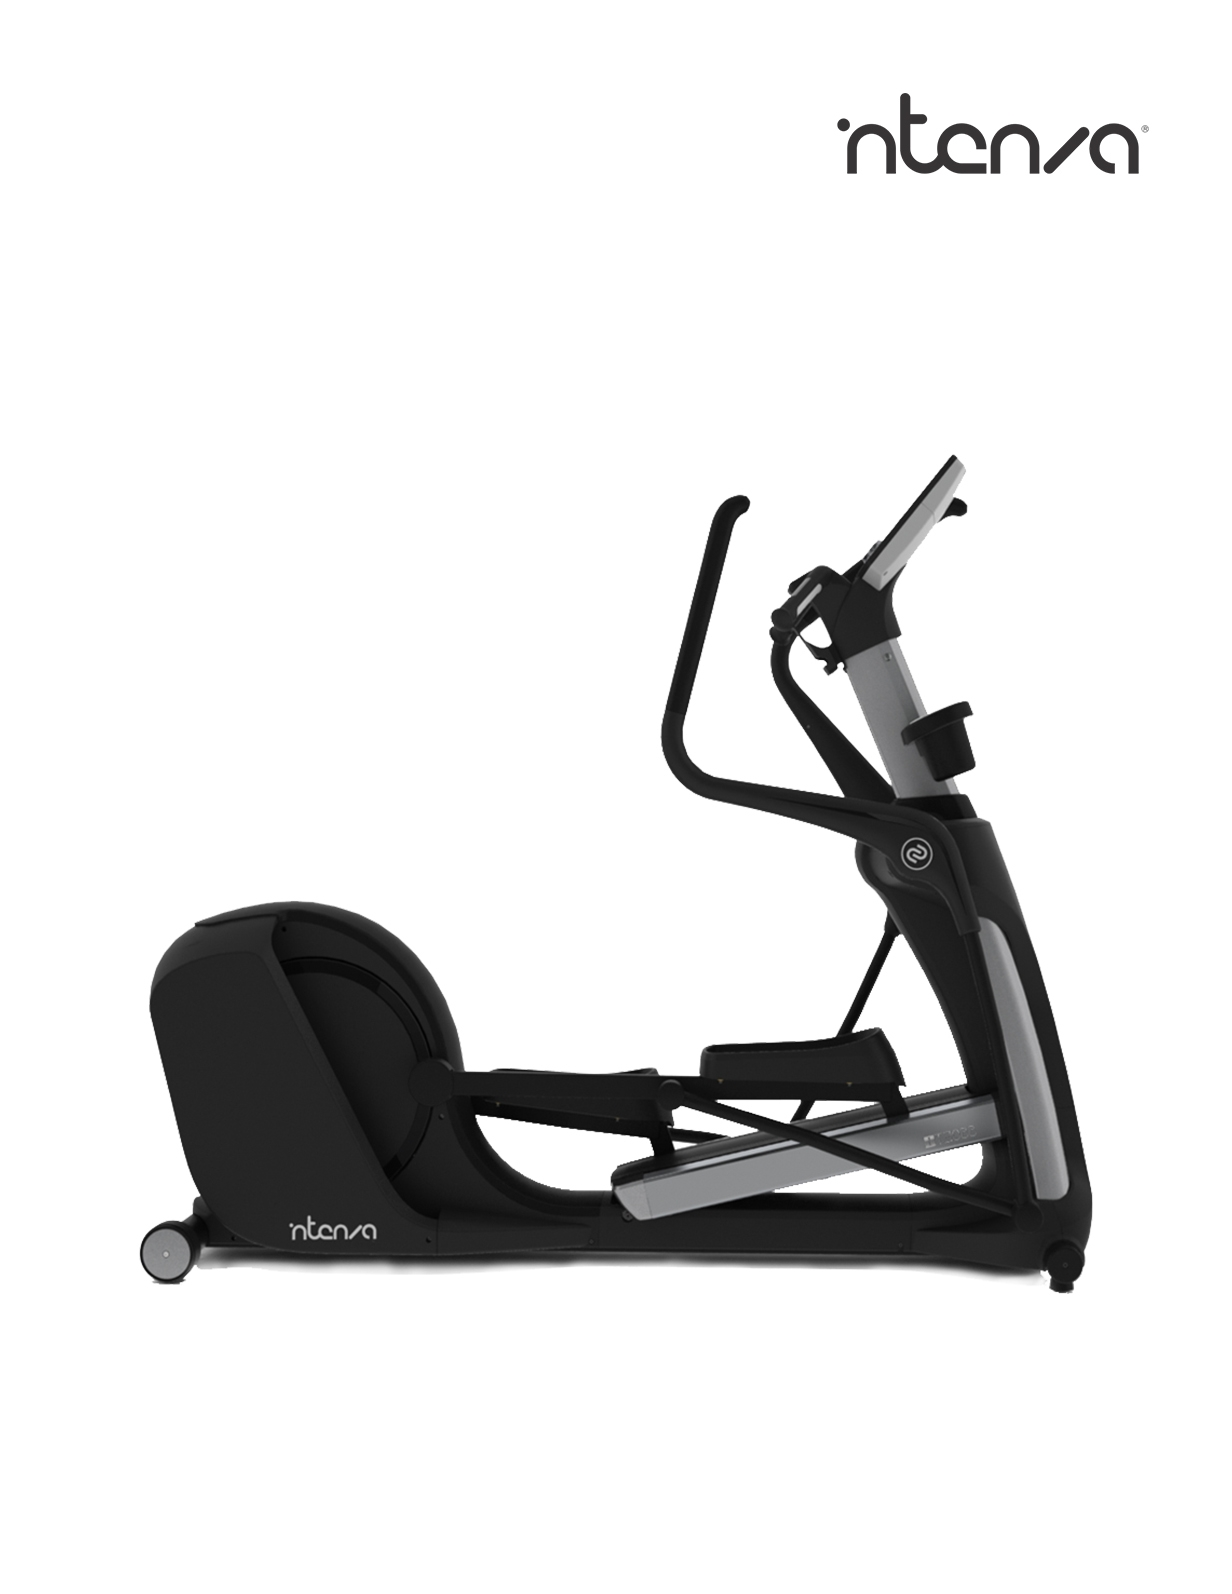 INTENZA 550 ELLIPTICAL CROSS TRAINER